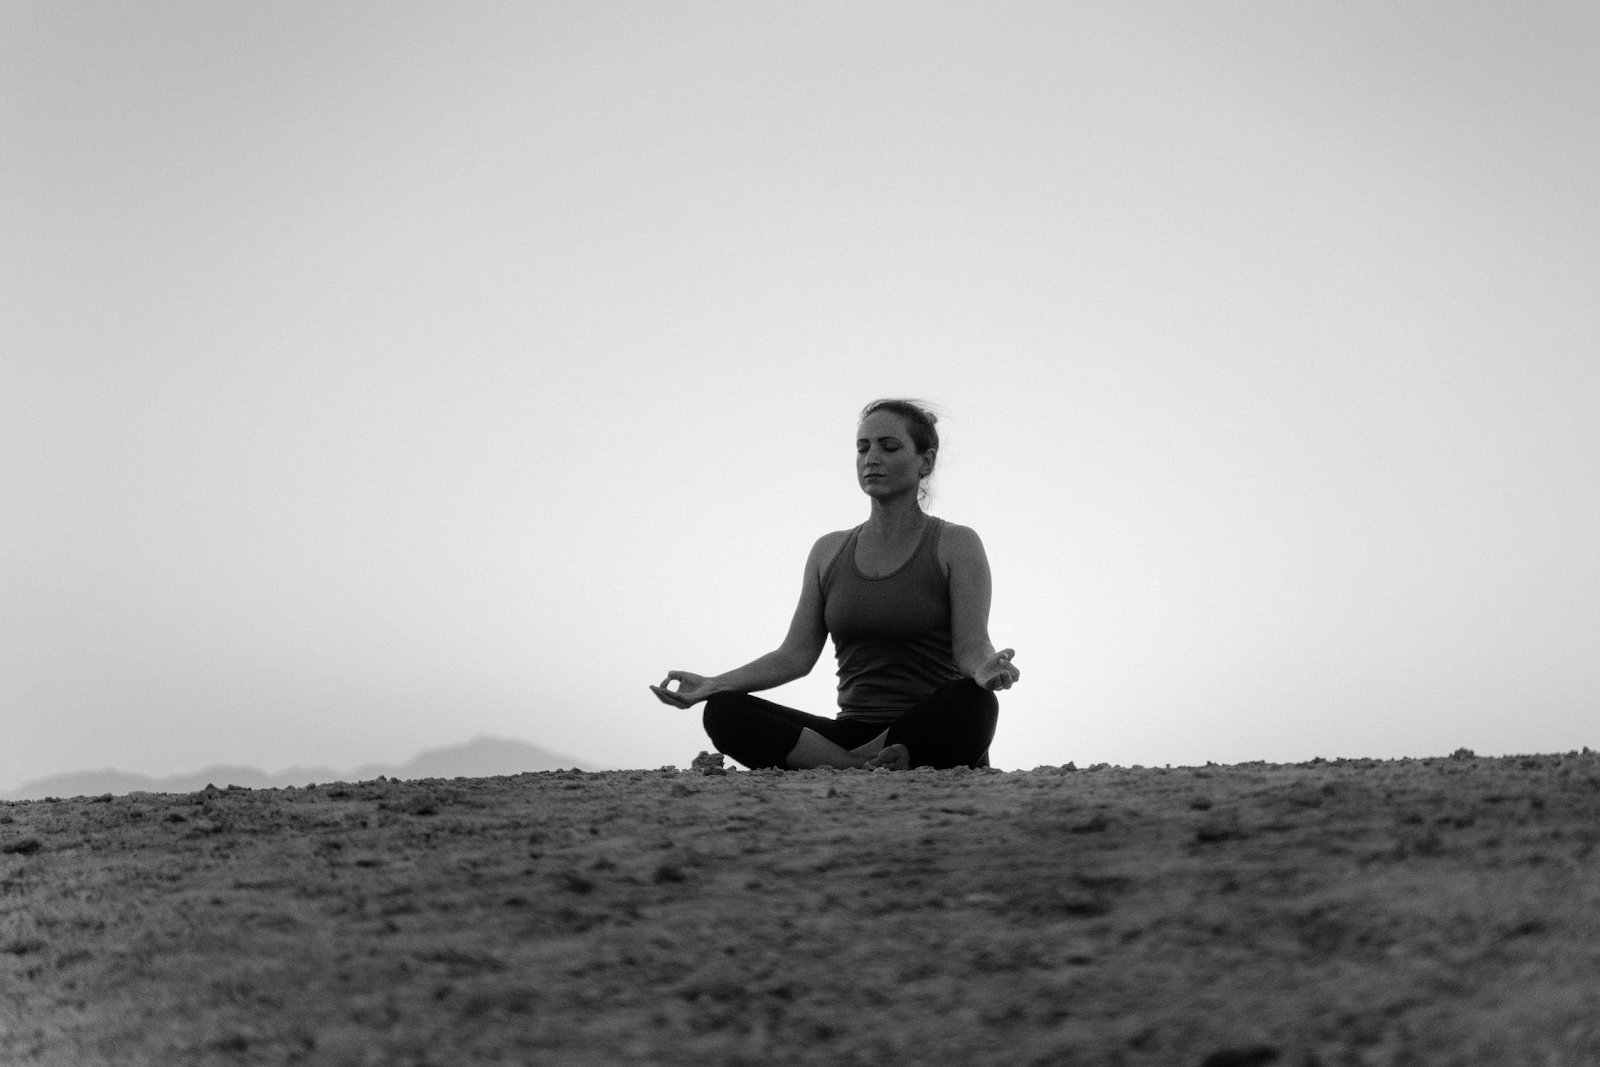 Woman sits in the sun mudra pose, a pose focusing on opening the solar plexus chakra. Sitting cross-legged with her back straight and hands resting on her knees with her thumb and ring fingers touching.